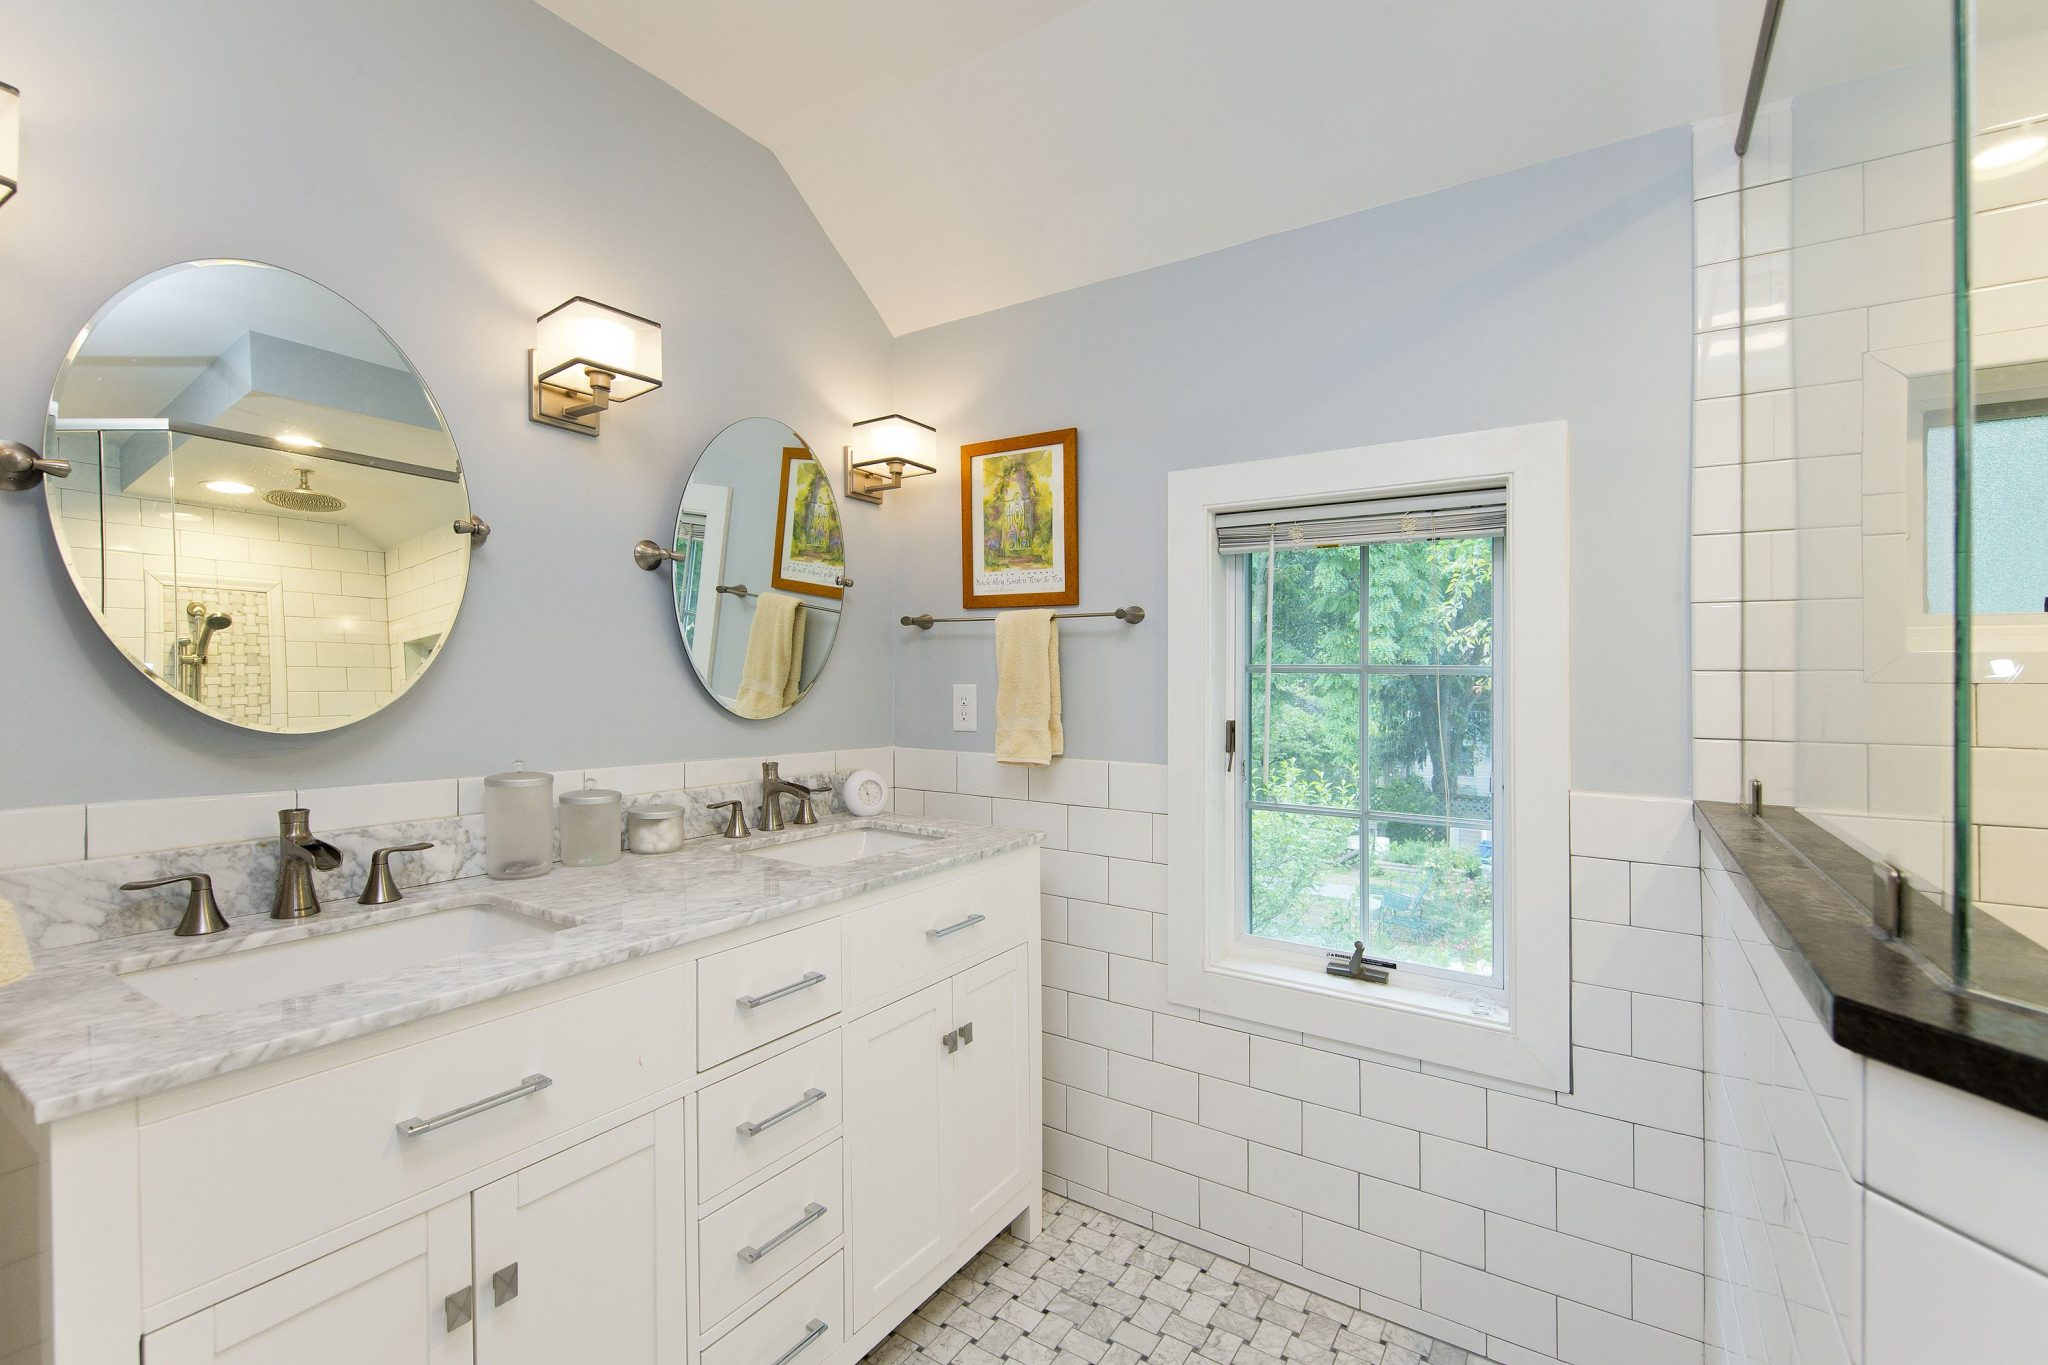 Award Winning Historic Renovation bathroom